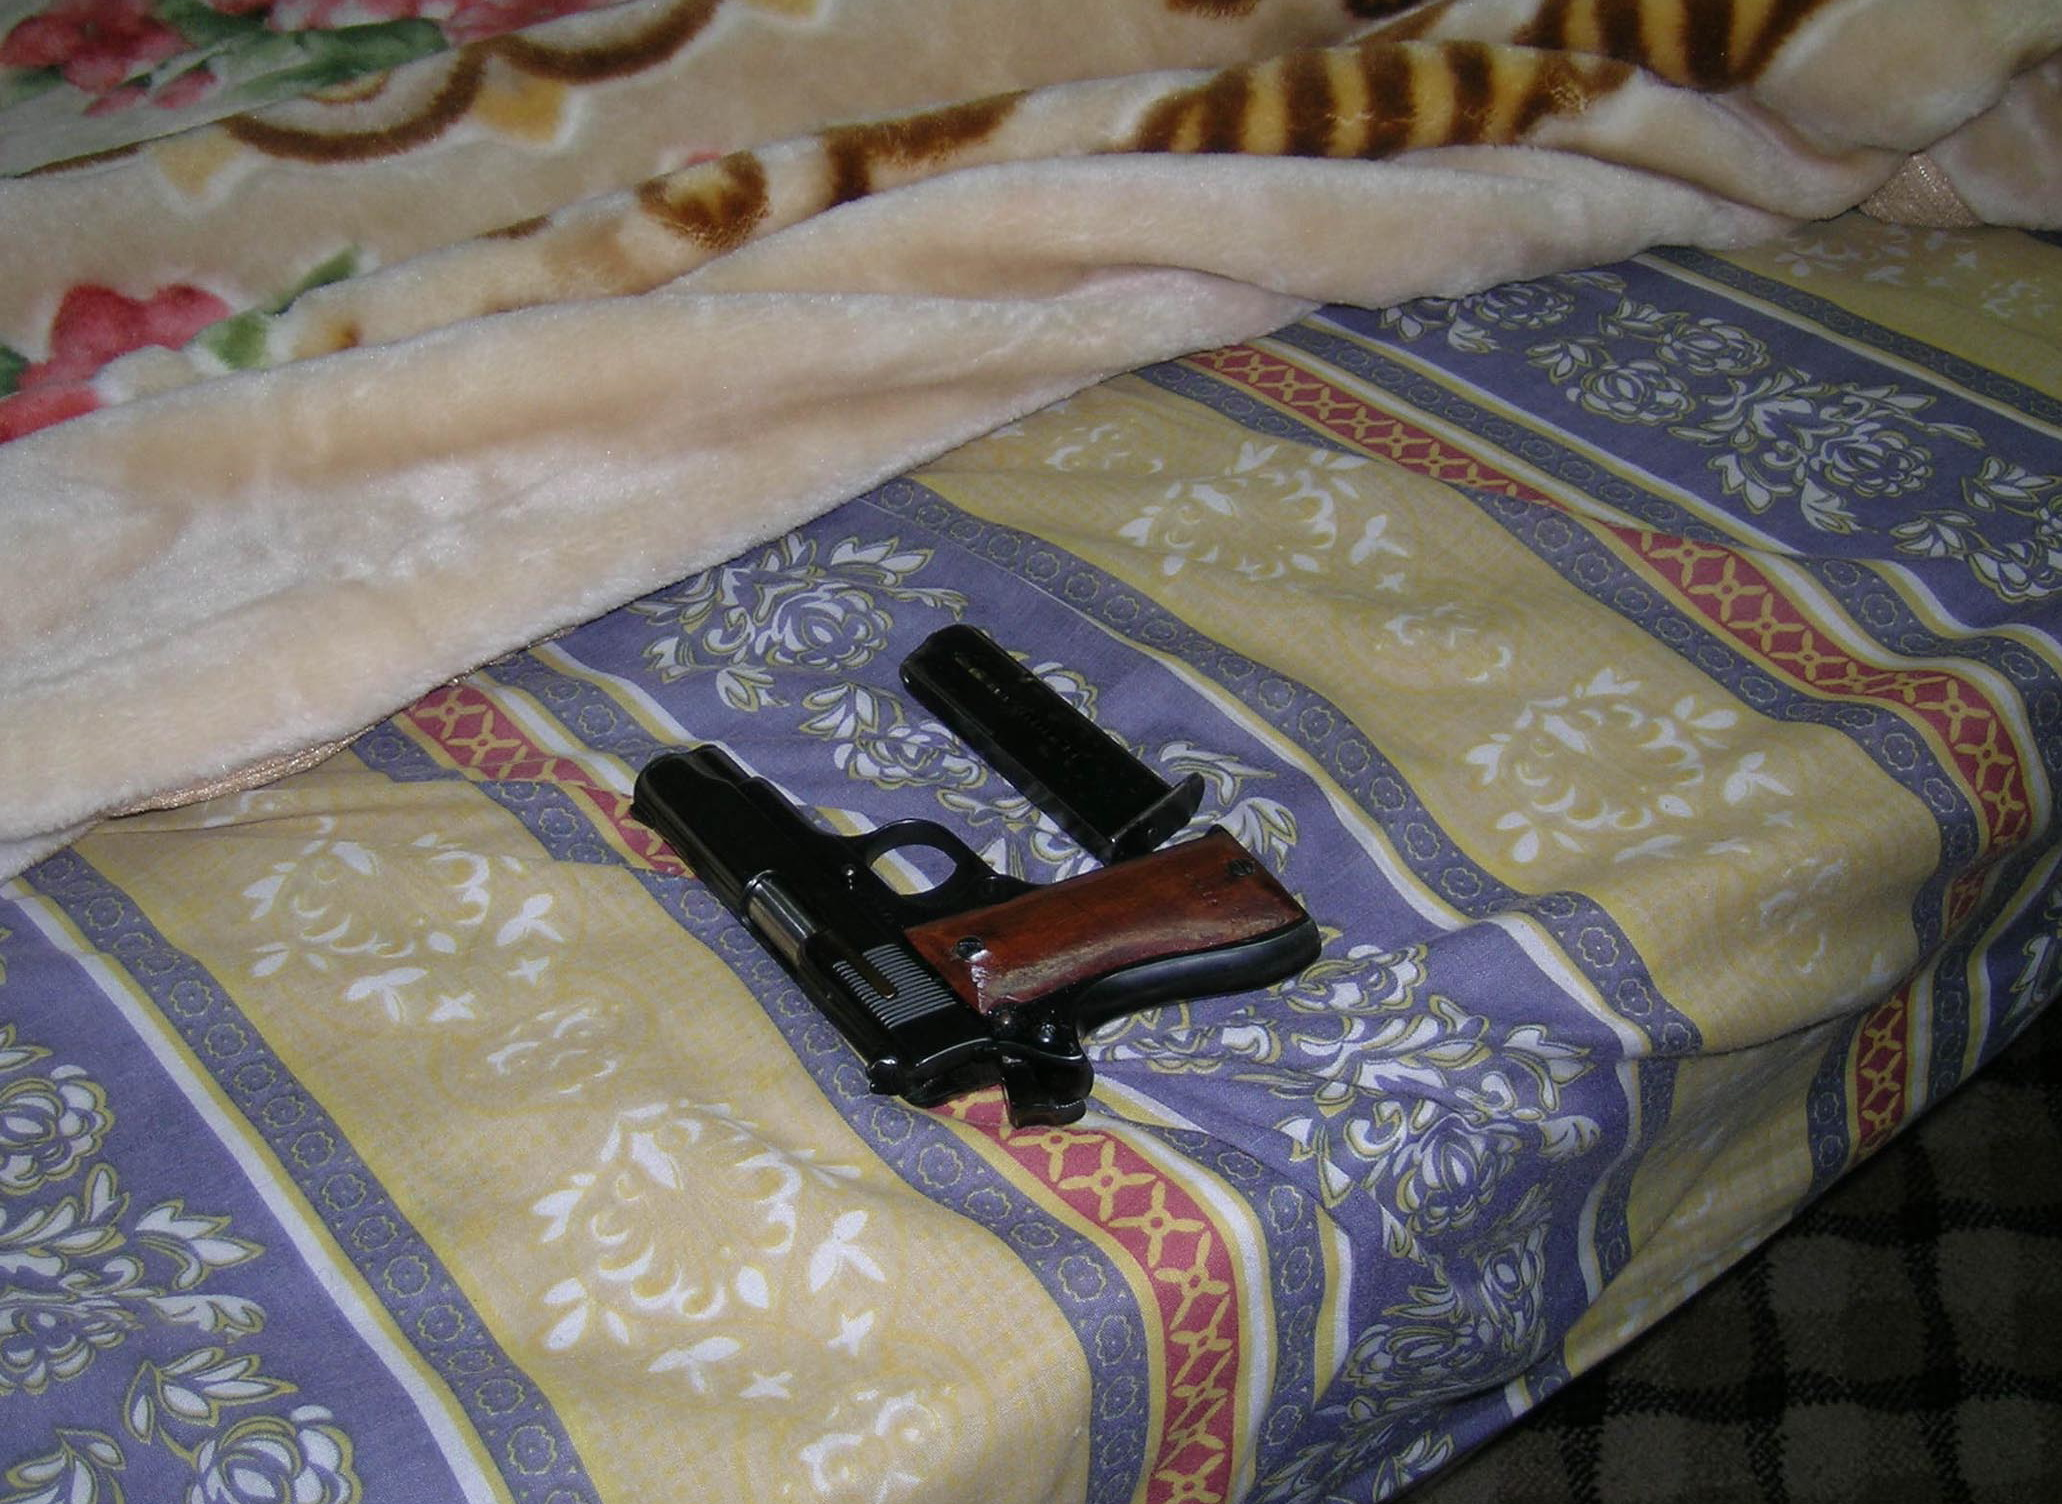 Defense Forces Gun and Magazine Hidden Under Bed in Nablus jpg